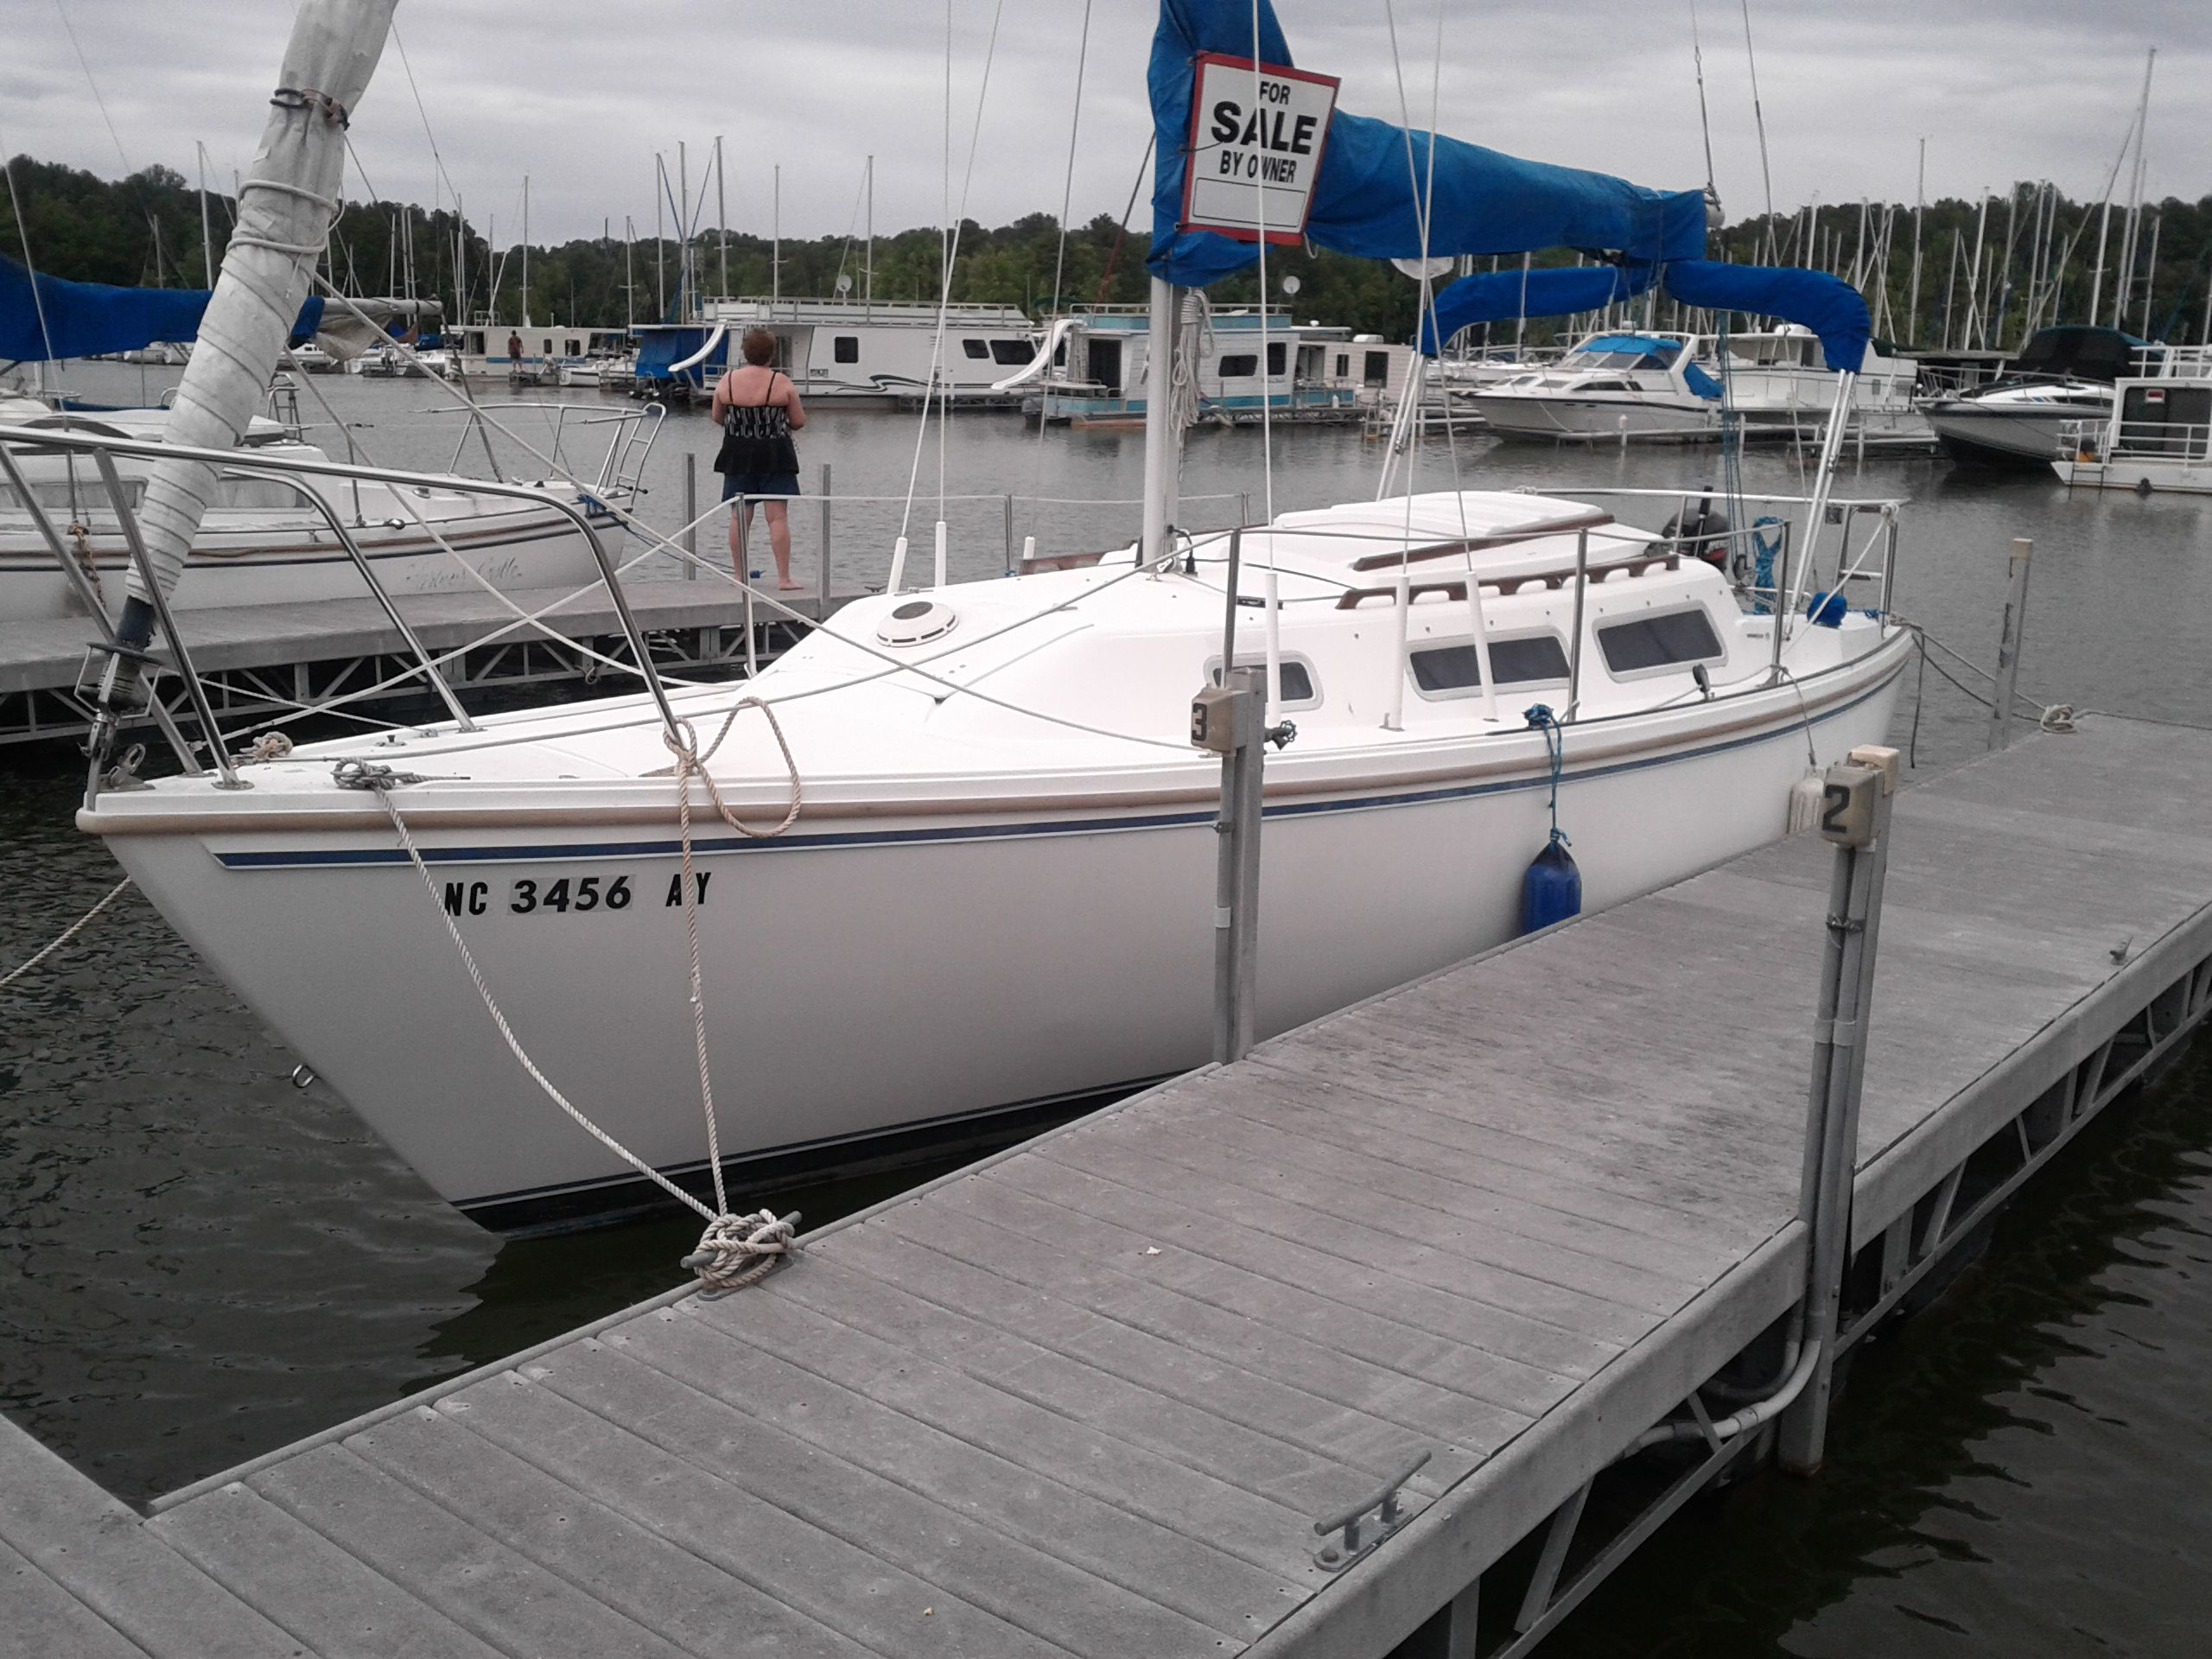 Used Sailboats For Sale >> The Best Websites For Buying A Used Boat